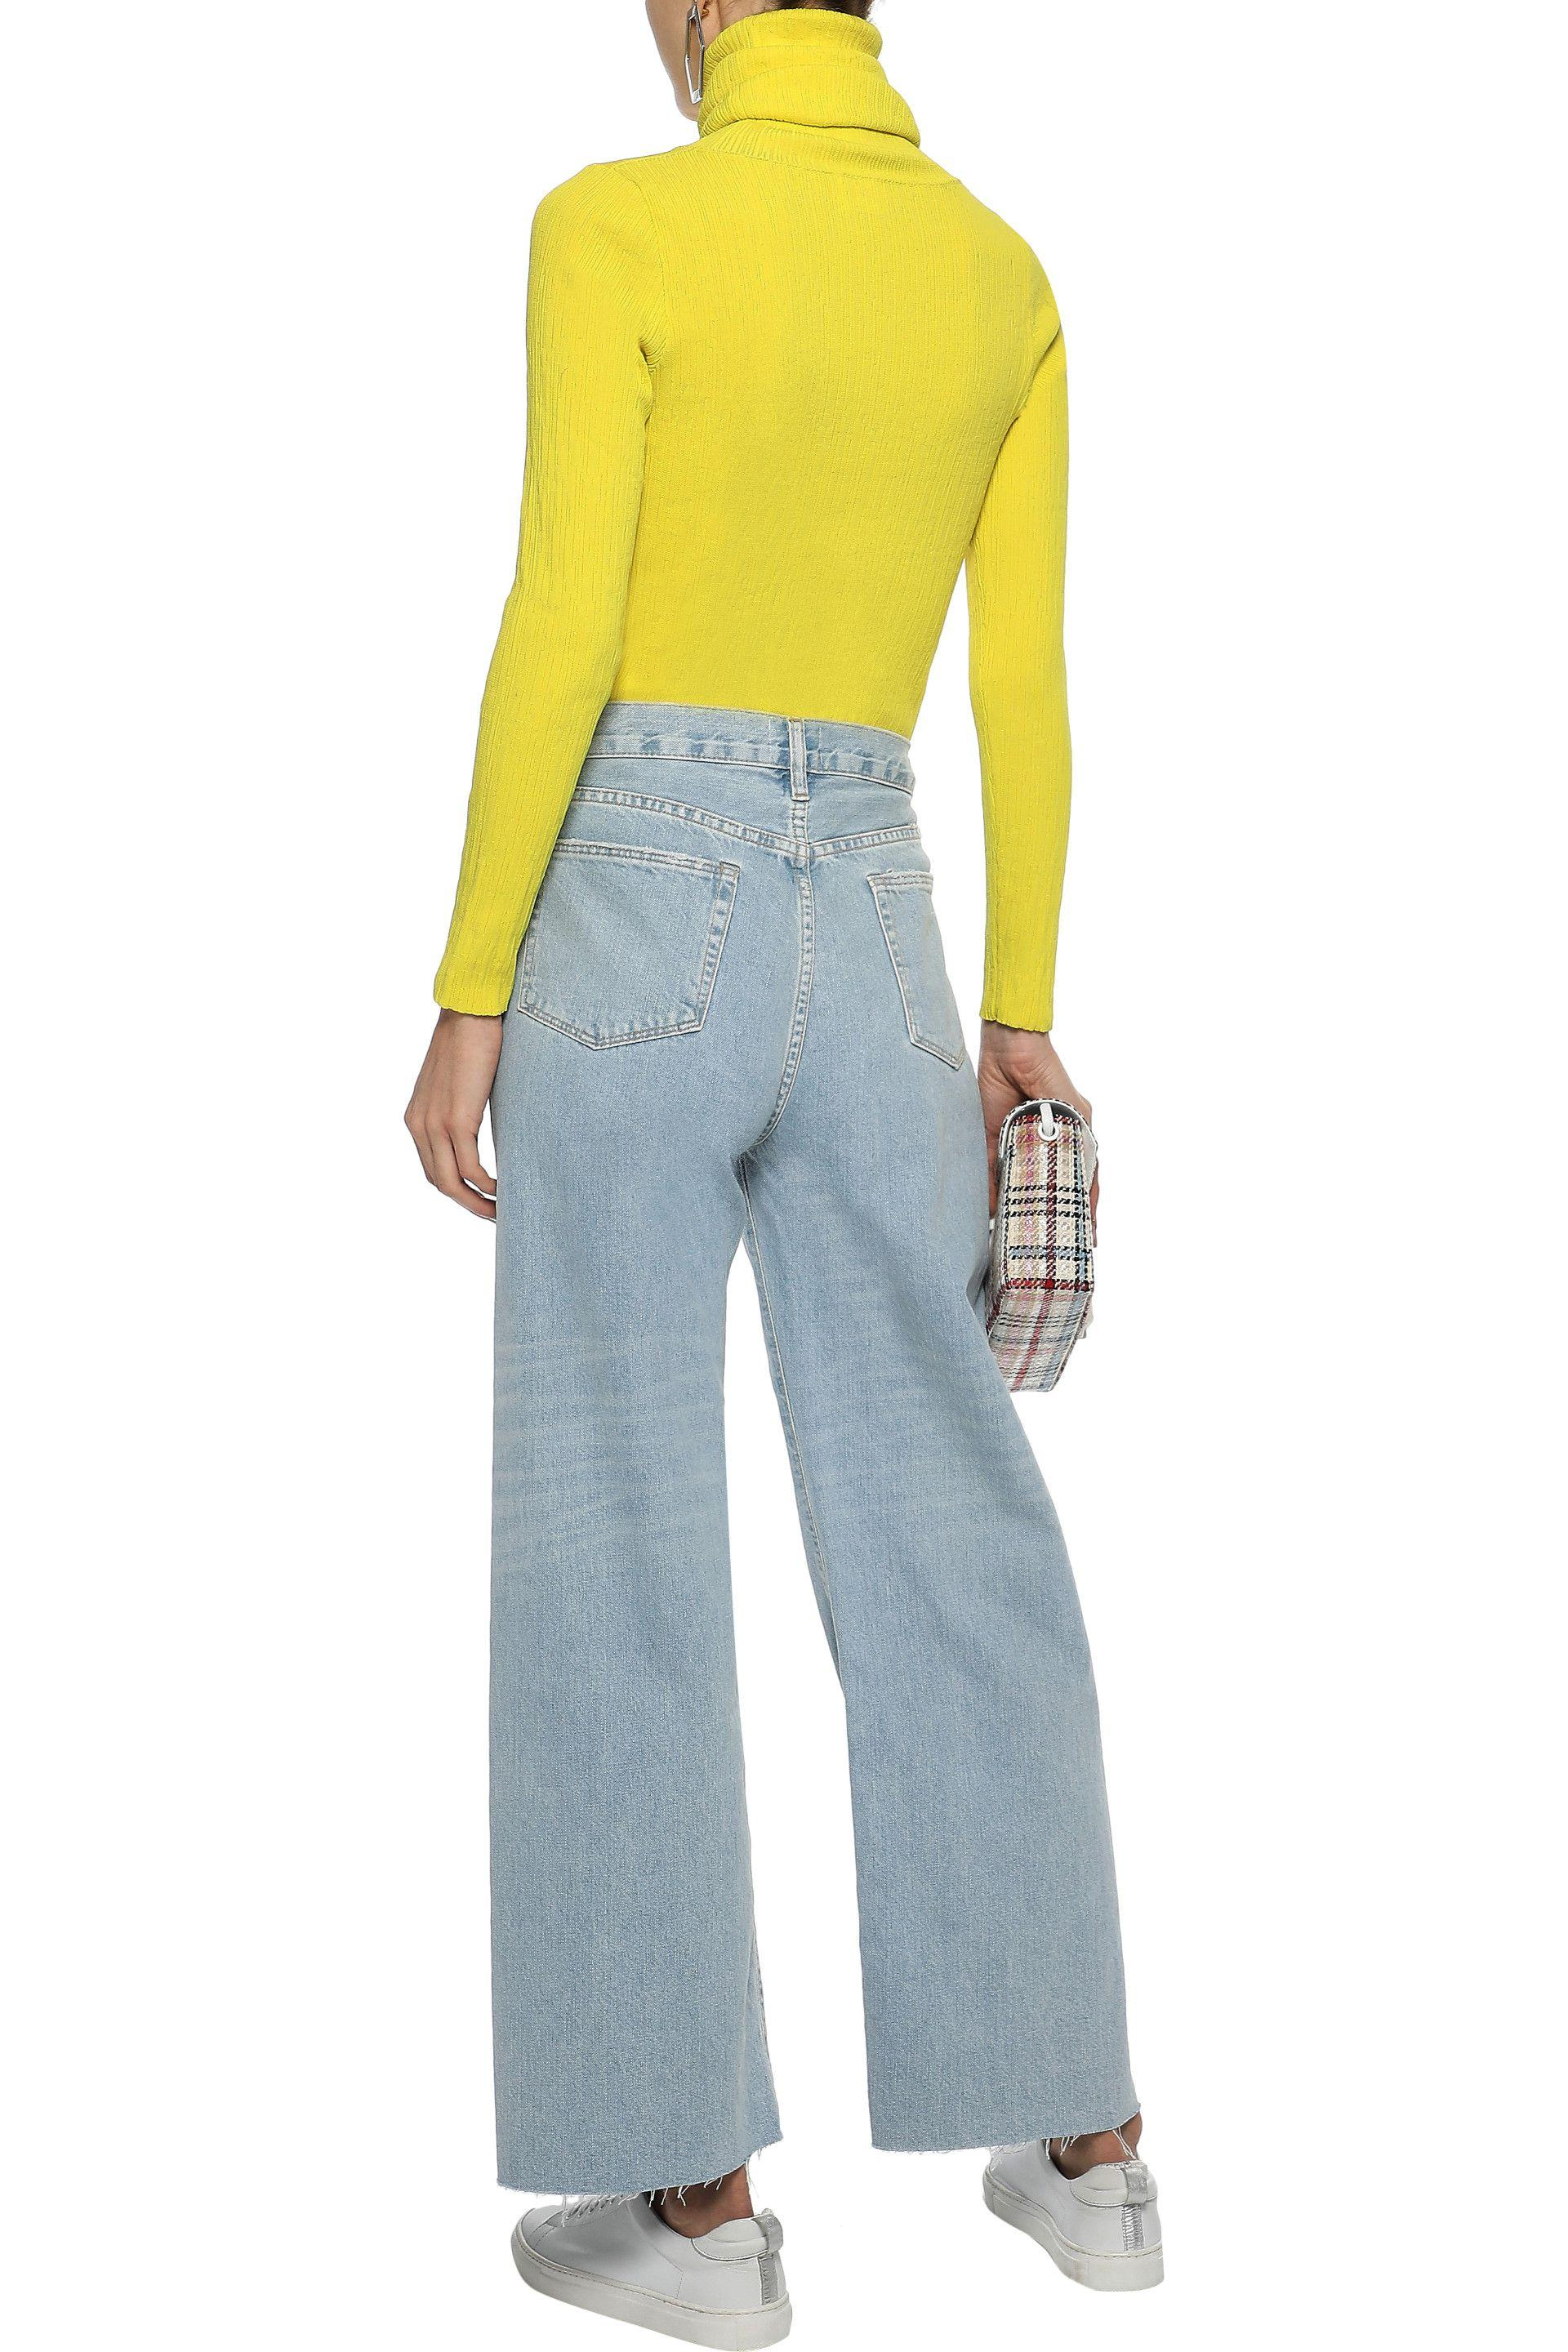 5d7b19e898af00 Simon Miller - Woman Ribbed-knit Turtleneck Sweater Bright Yellow - Lyst.  View fullscreen